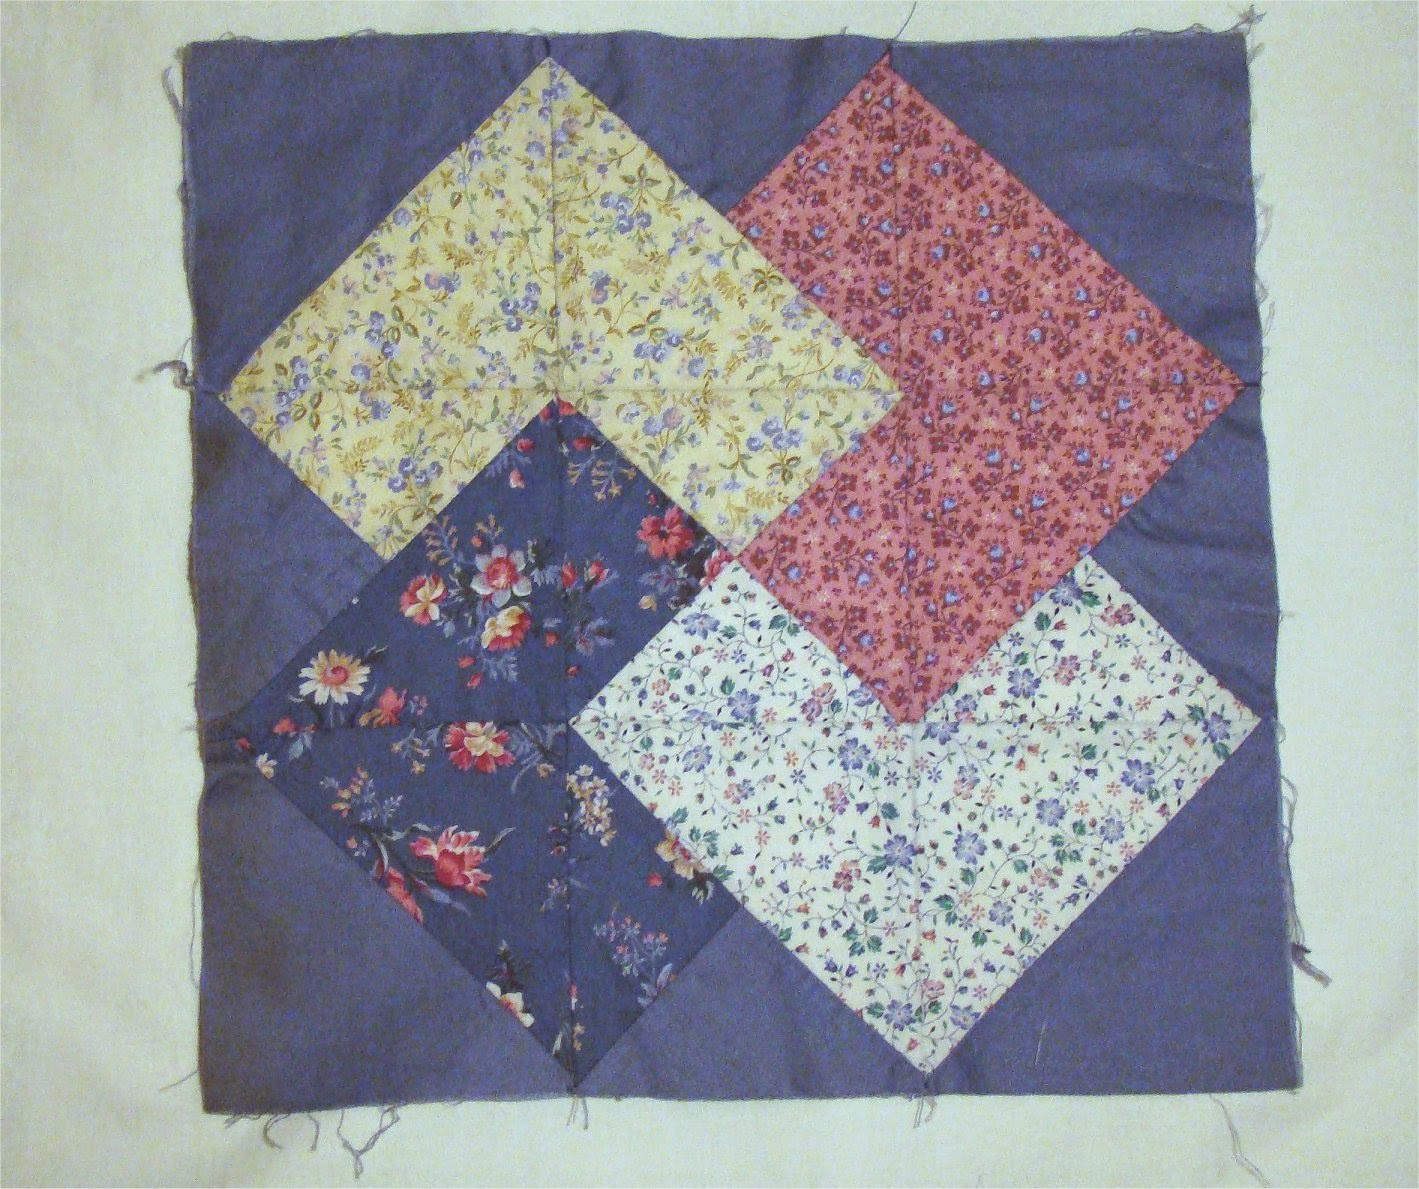 Card trick quilt block pieces are like health insurance and providers